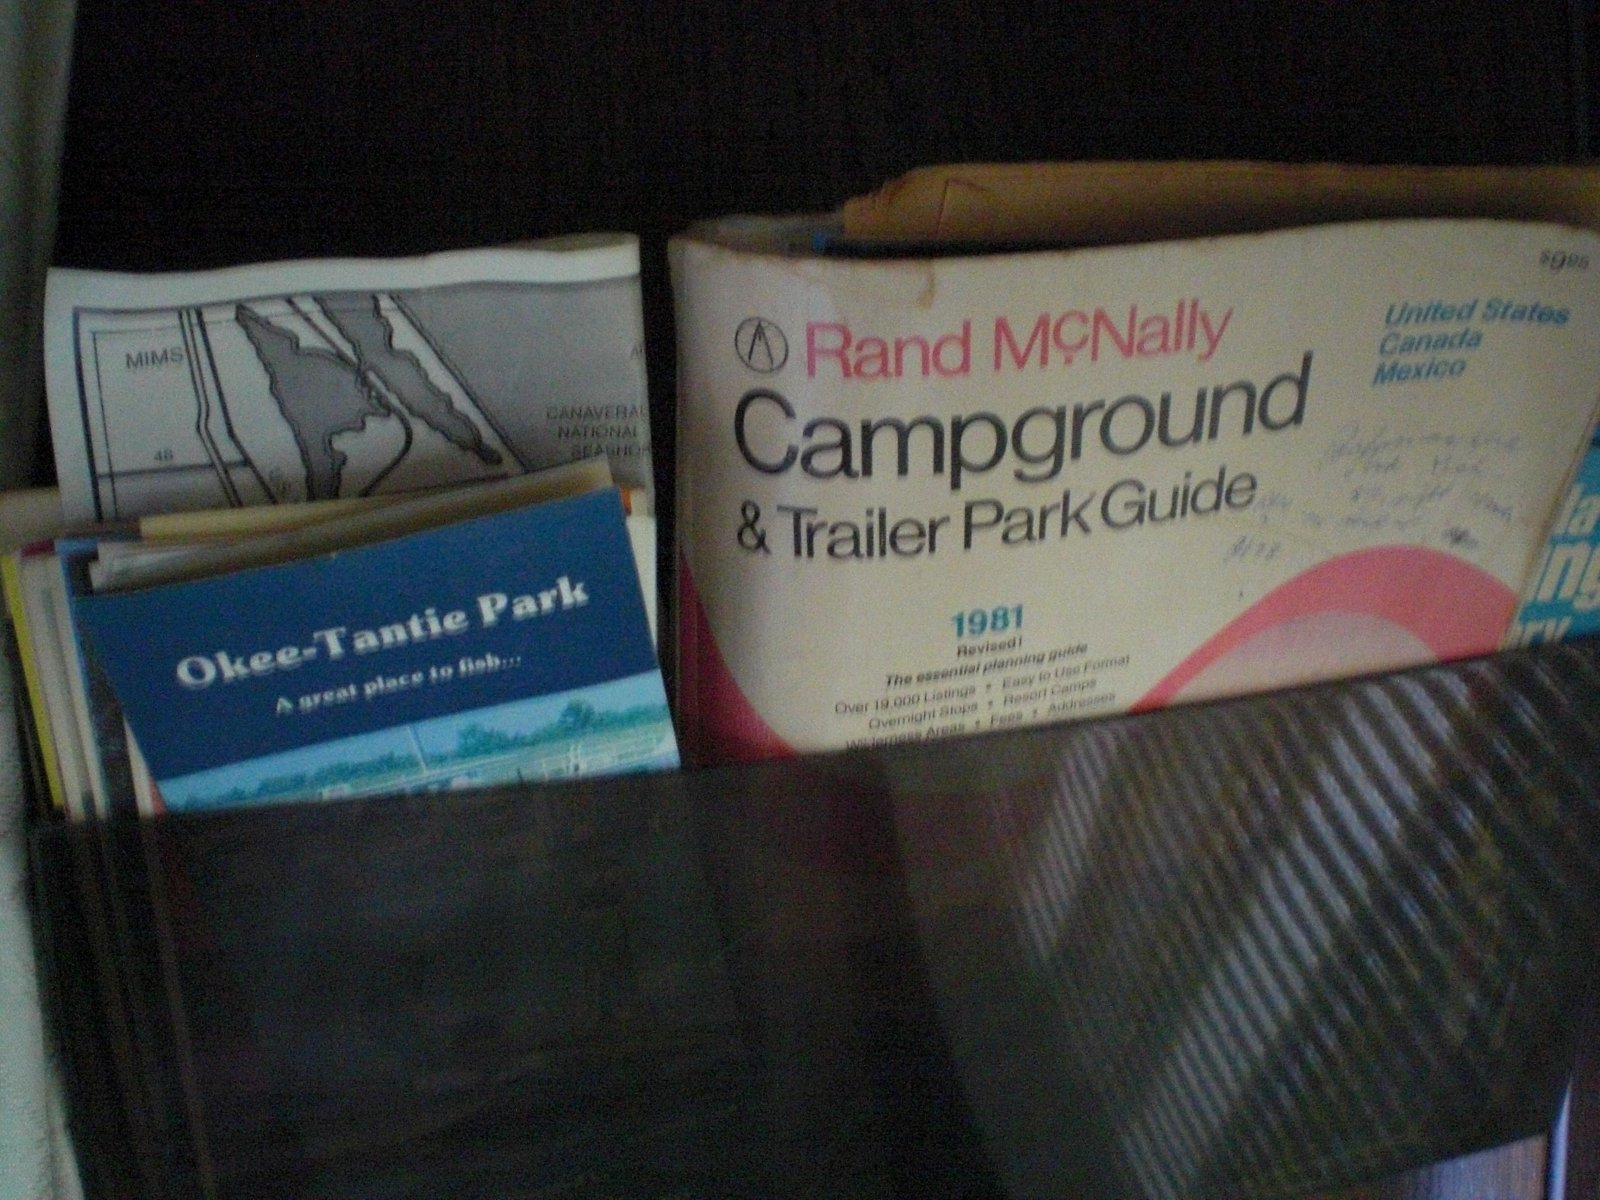 Click image for larger version  Name:campground guide.jpg Views:159 Size:336.6 KB ID:9828